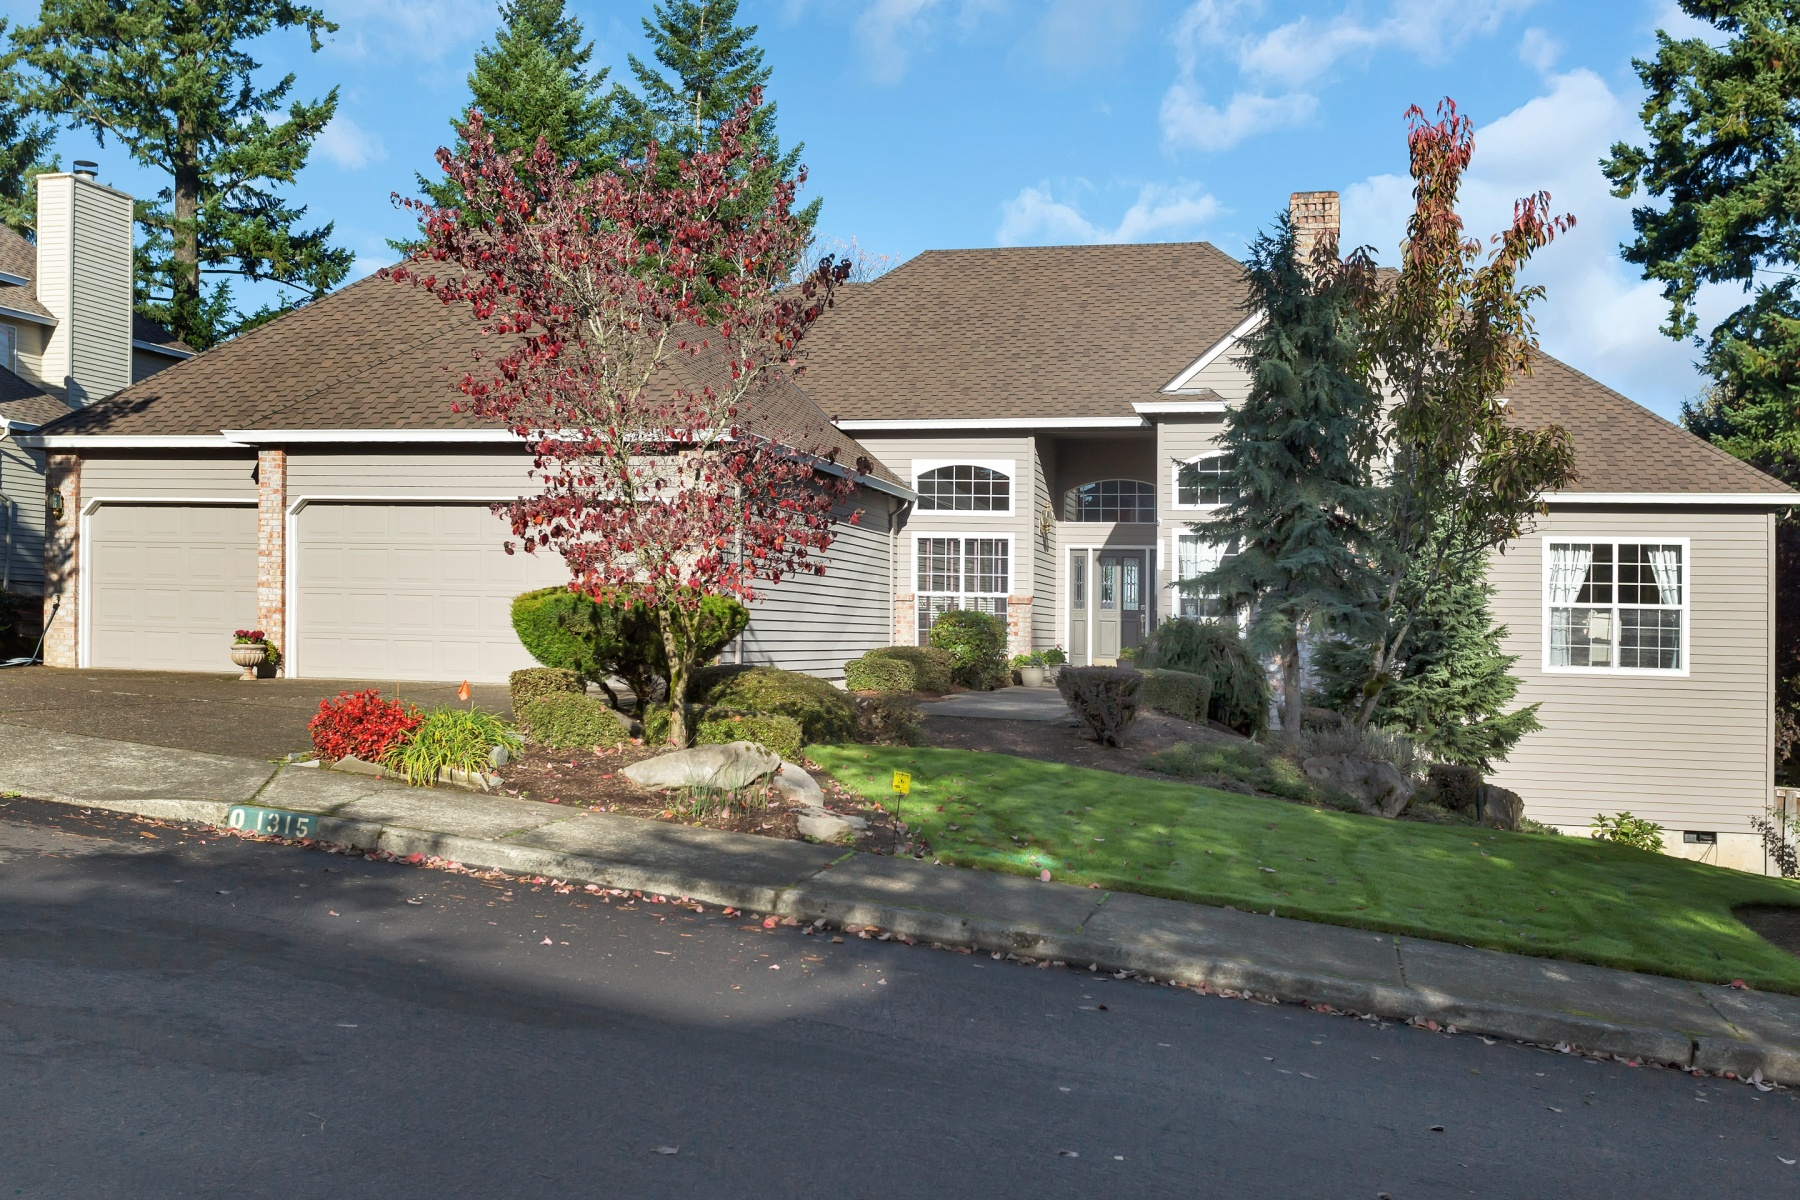 Single Family Home for Sale at 1315 Stonehaven, West Linn 1315 Stonehaven Dr West Linn, Oregon 97068 United States